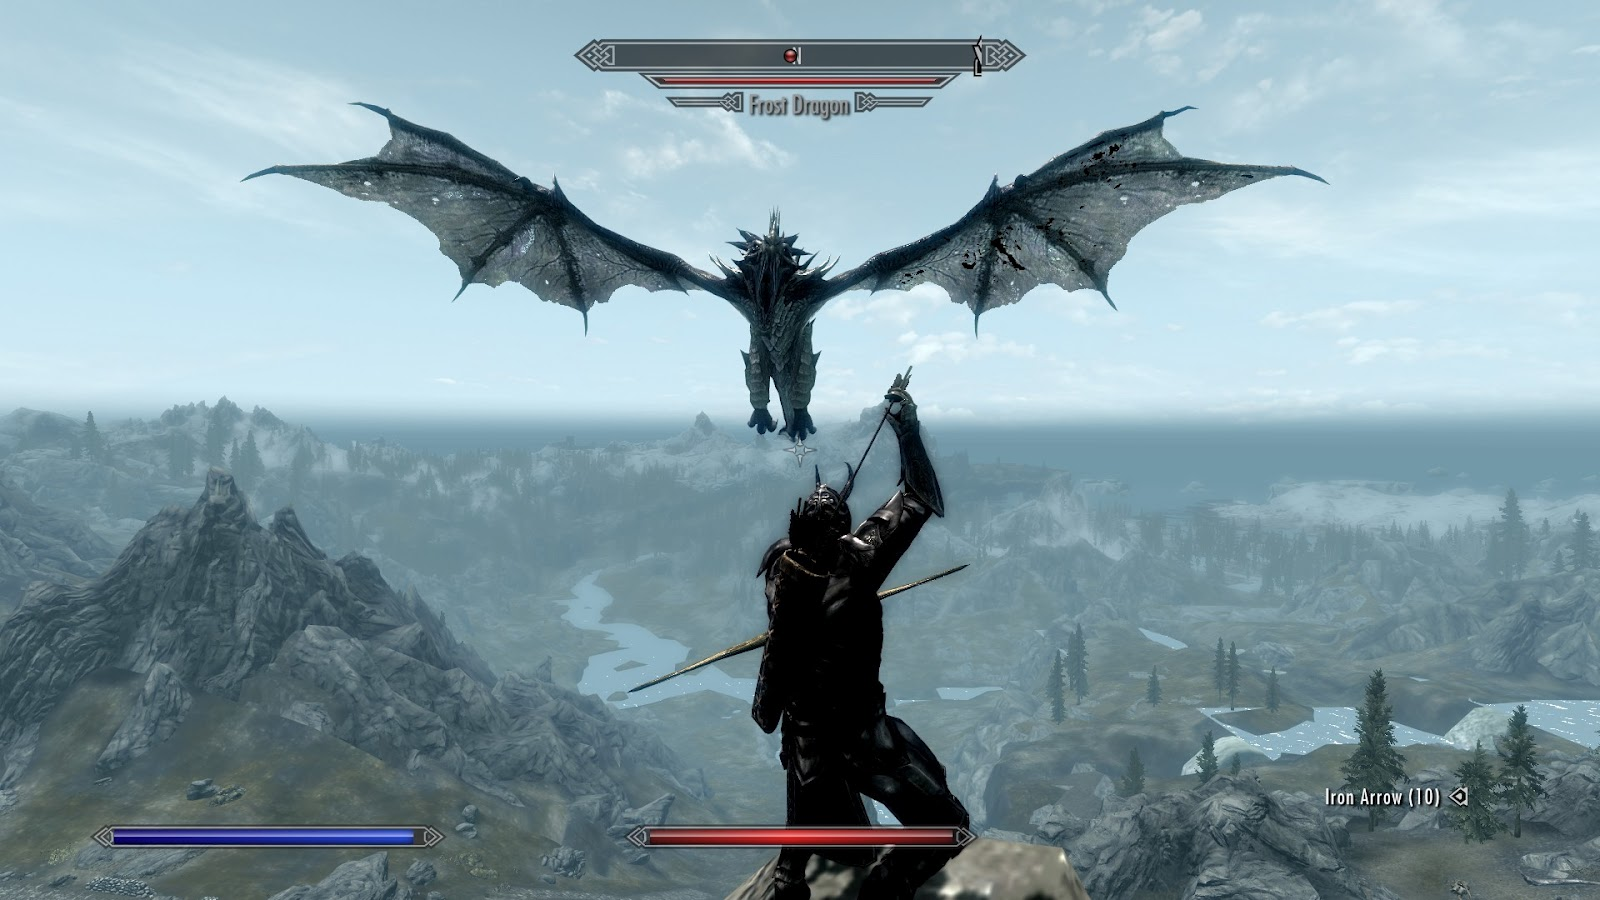 Bethesda ported Skyrim to Xbox One, but only as a technical